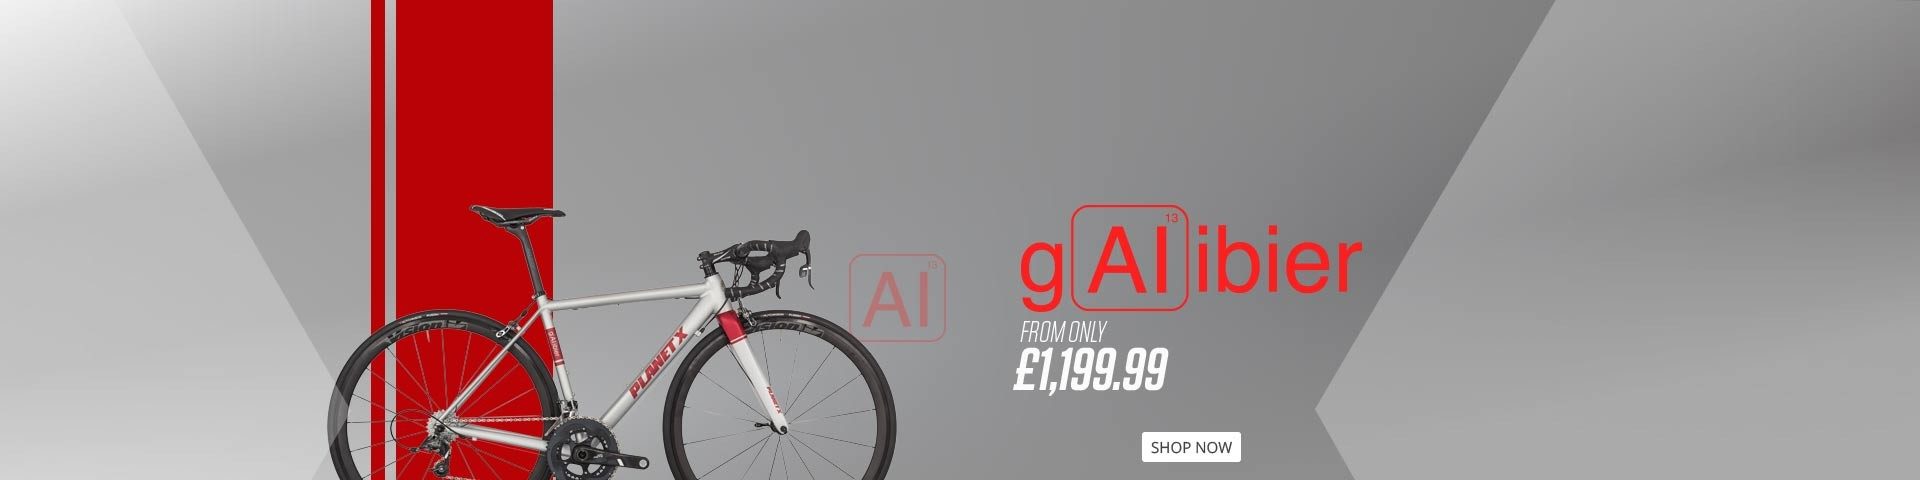 GALIBIER ALUMINIUM ROAD BIKE ARTISTRY